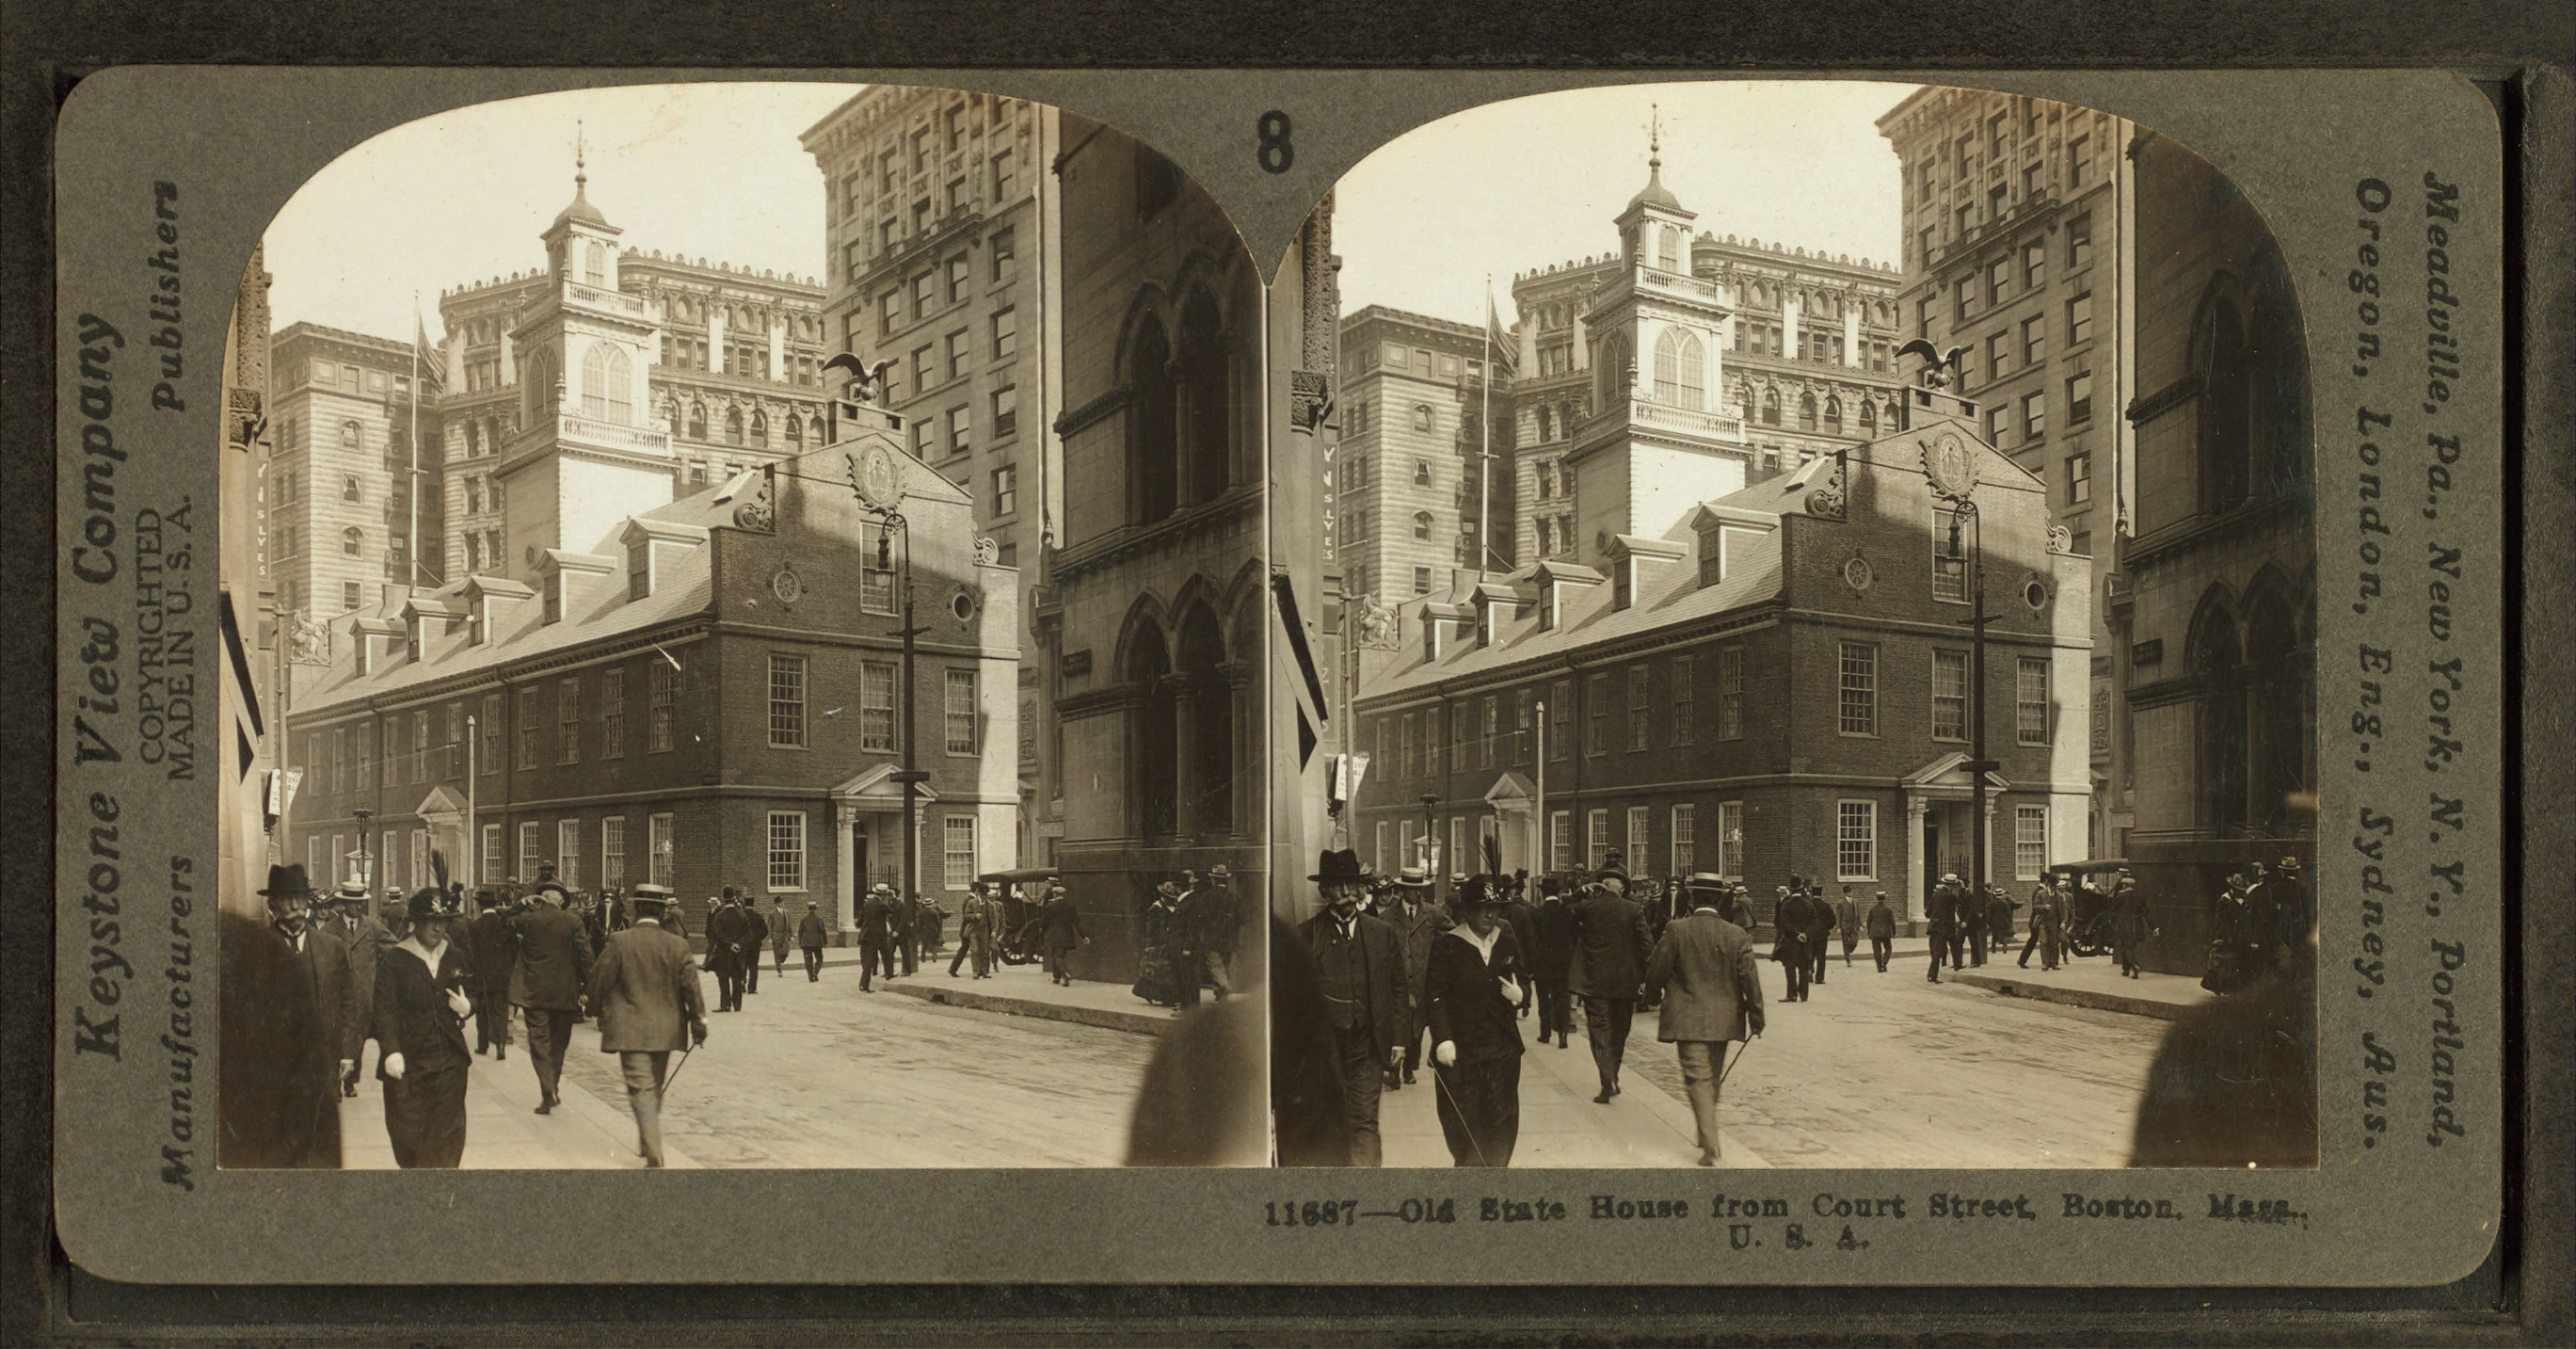 File:Old State House, from Court Street, Boston, Mass